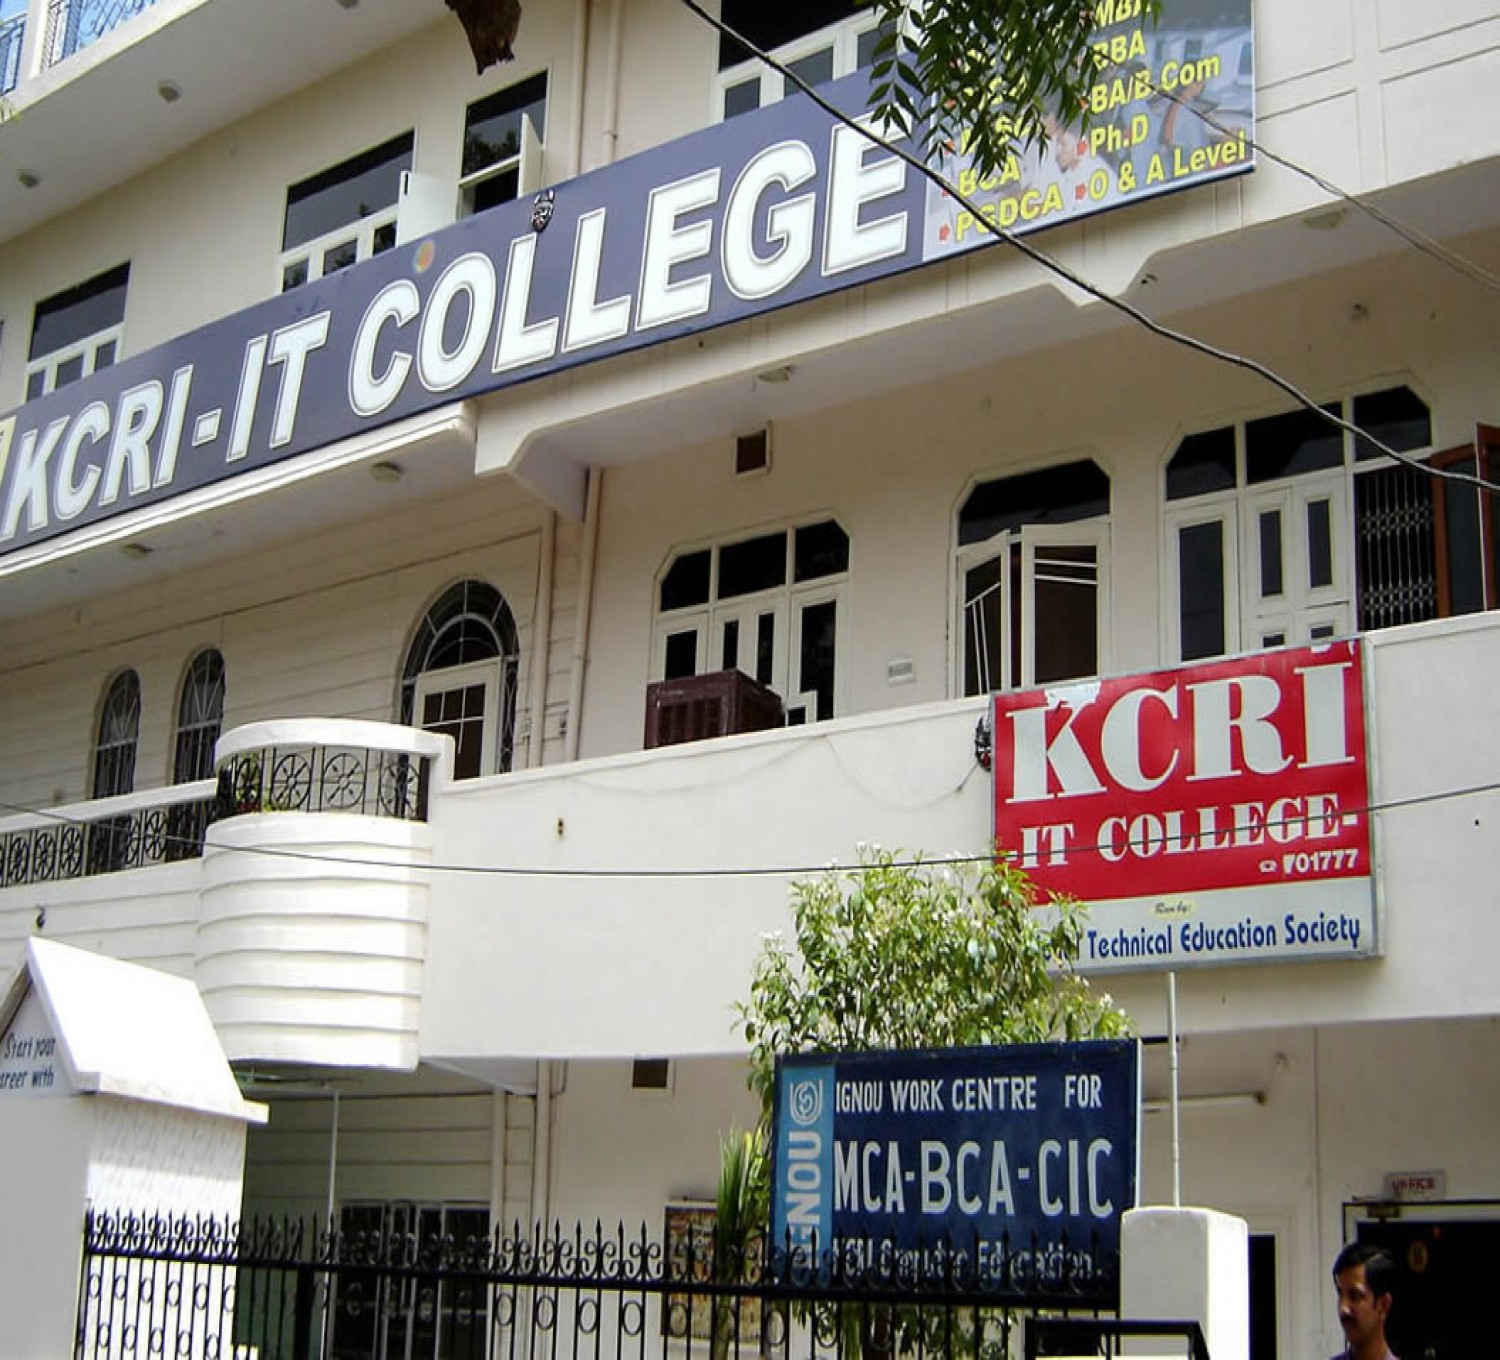 Kcri It College-cover